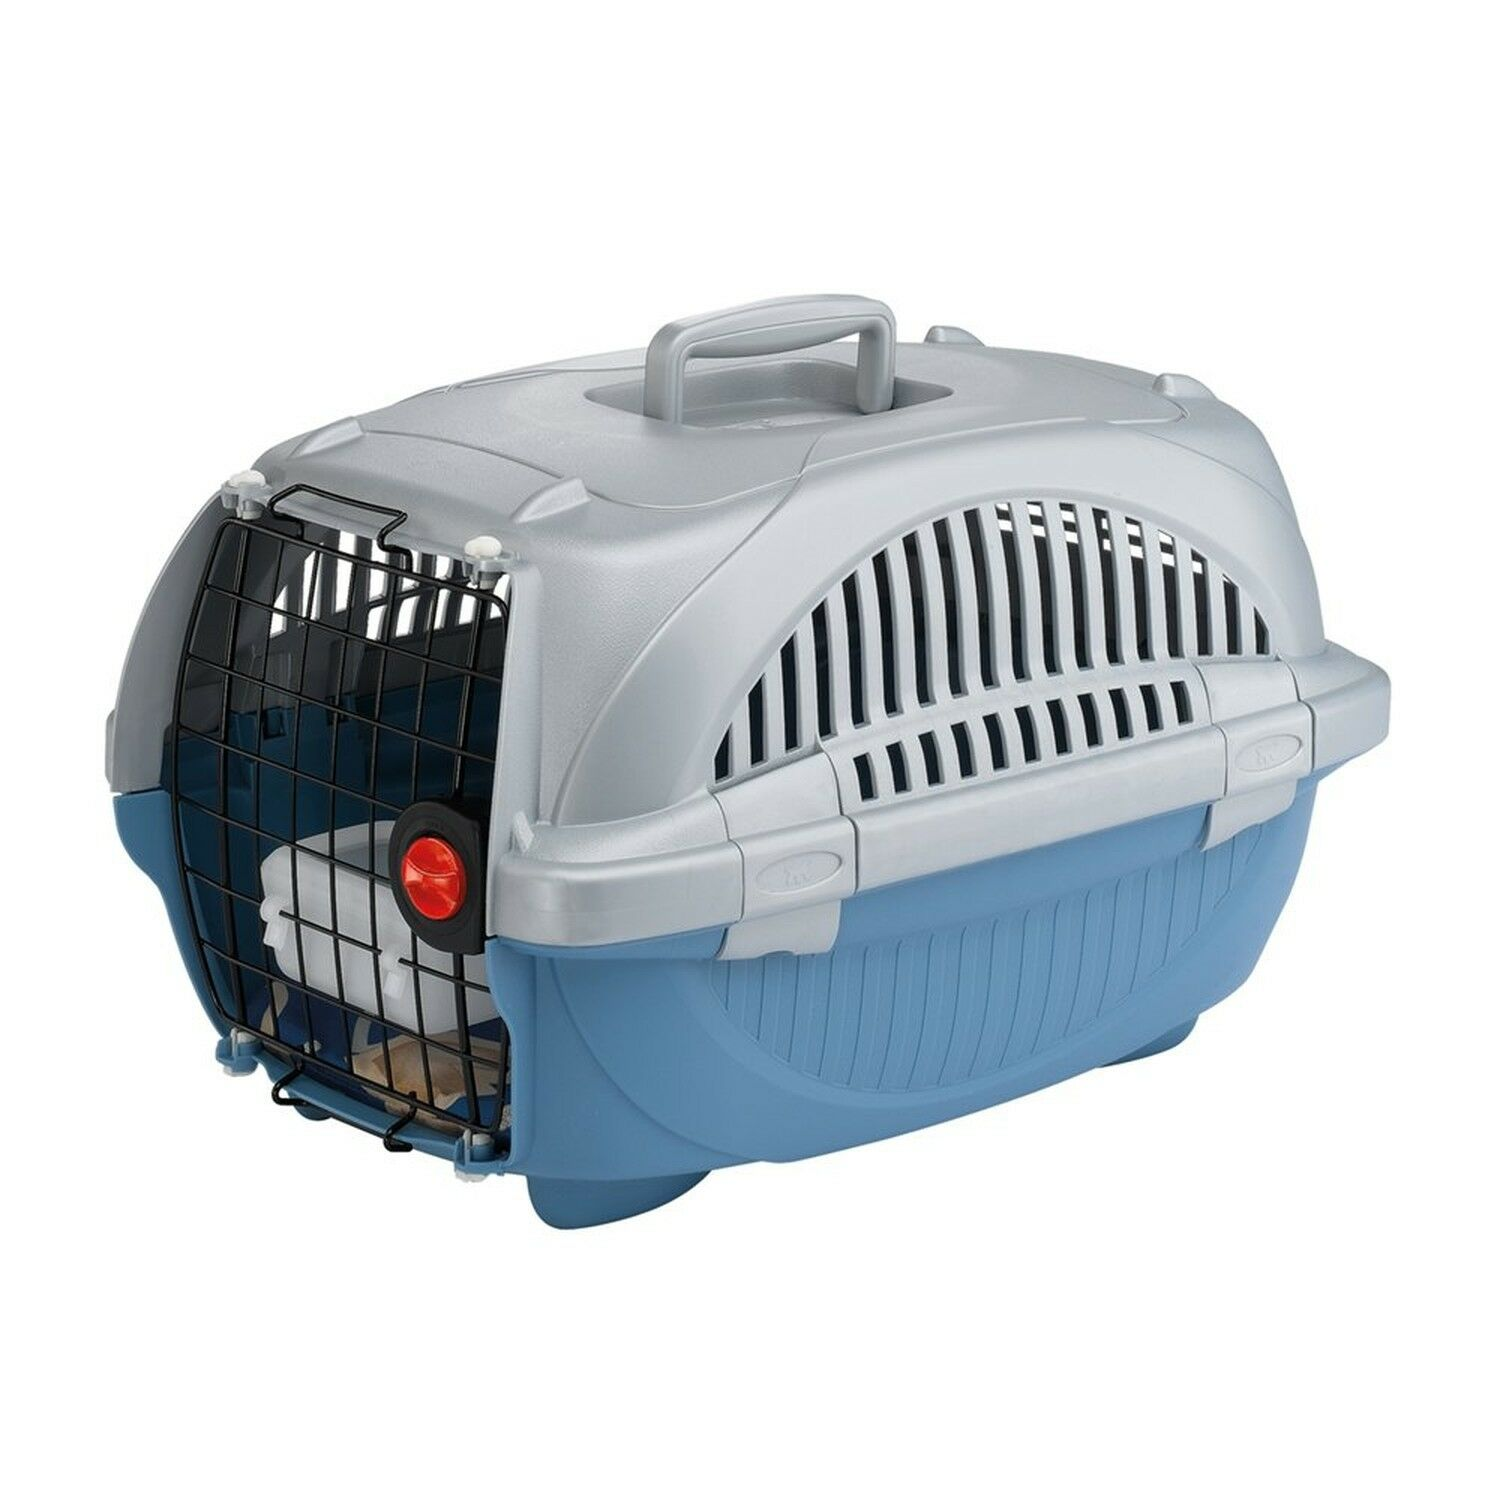 Ferplast Atlas Deluxe 20 Cat and Dog Carrier, 37.4 x 57.6 x 33 cm, bluee